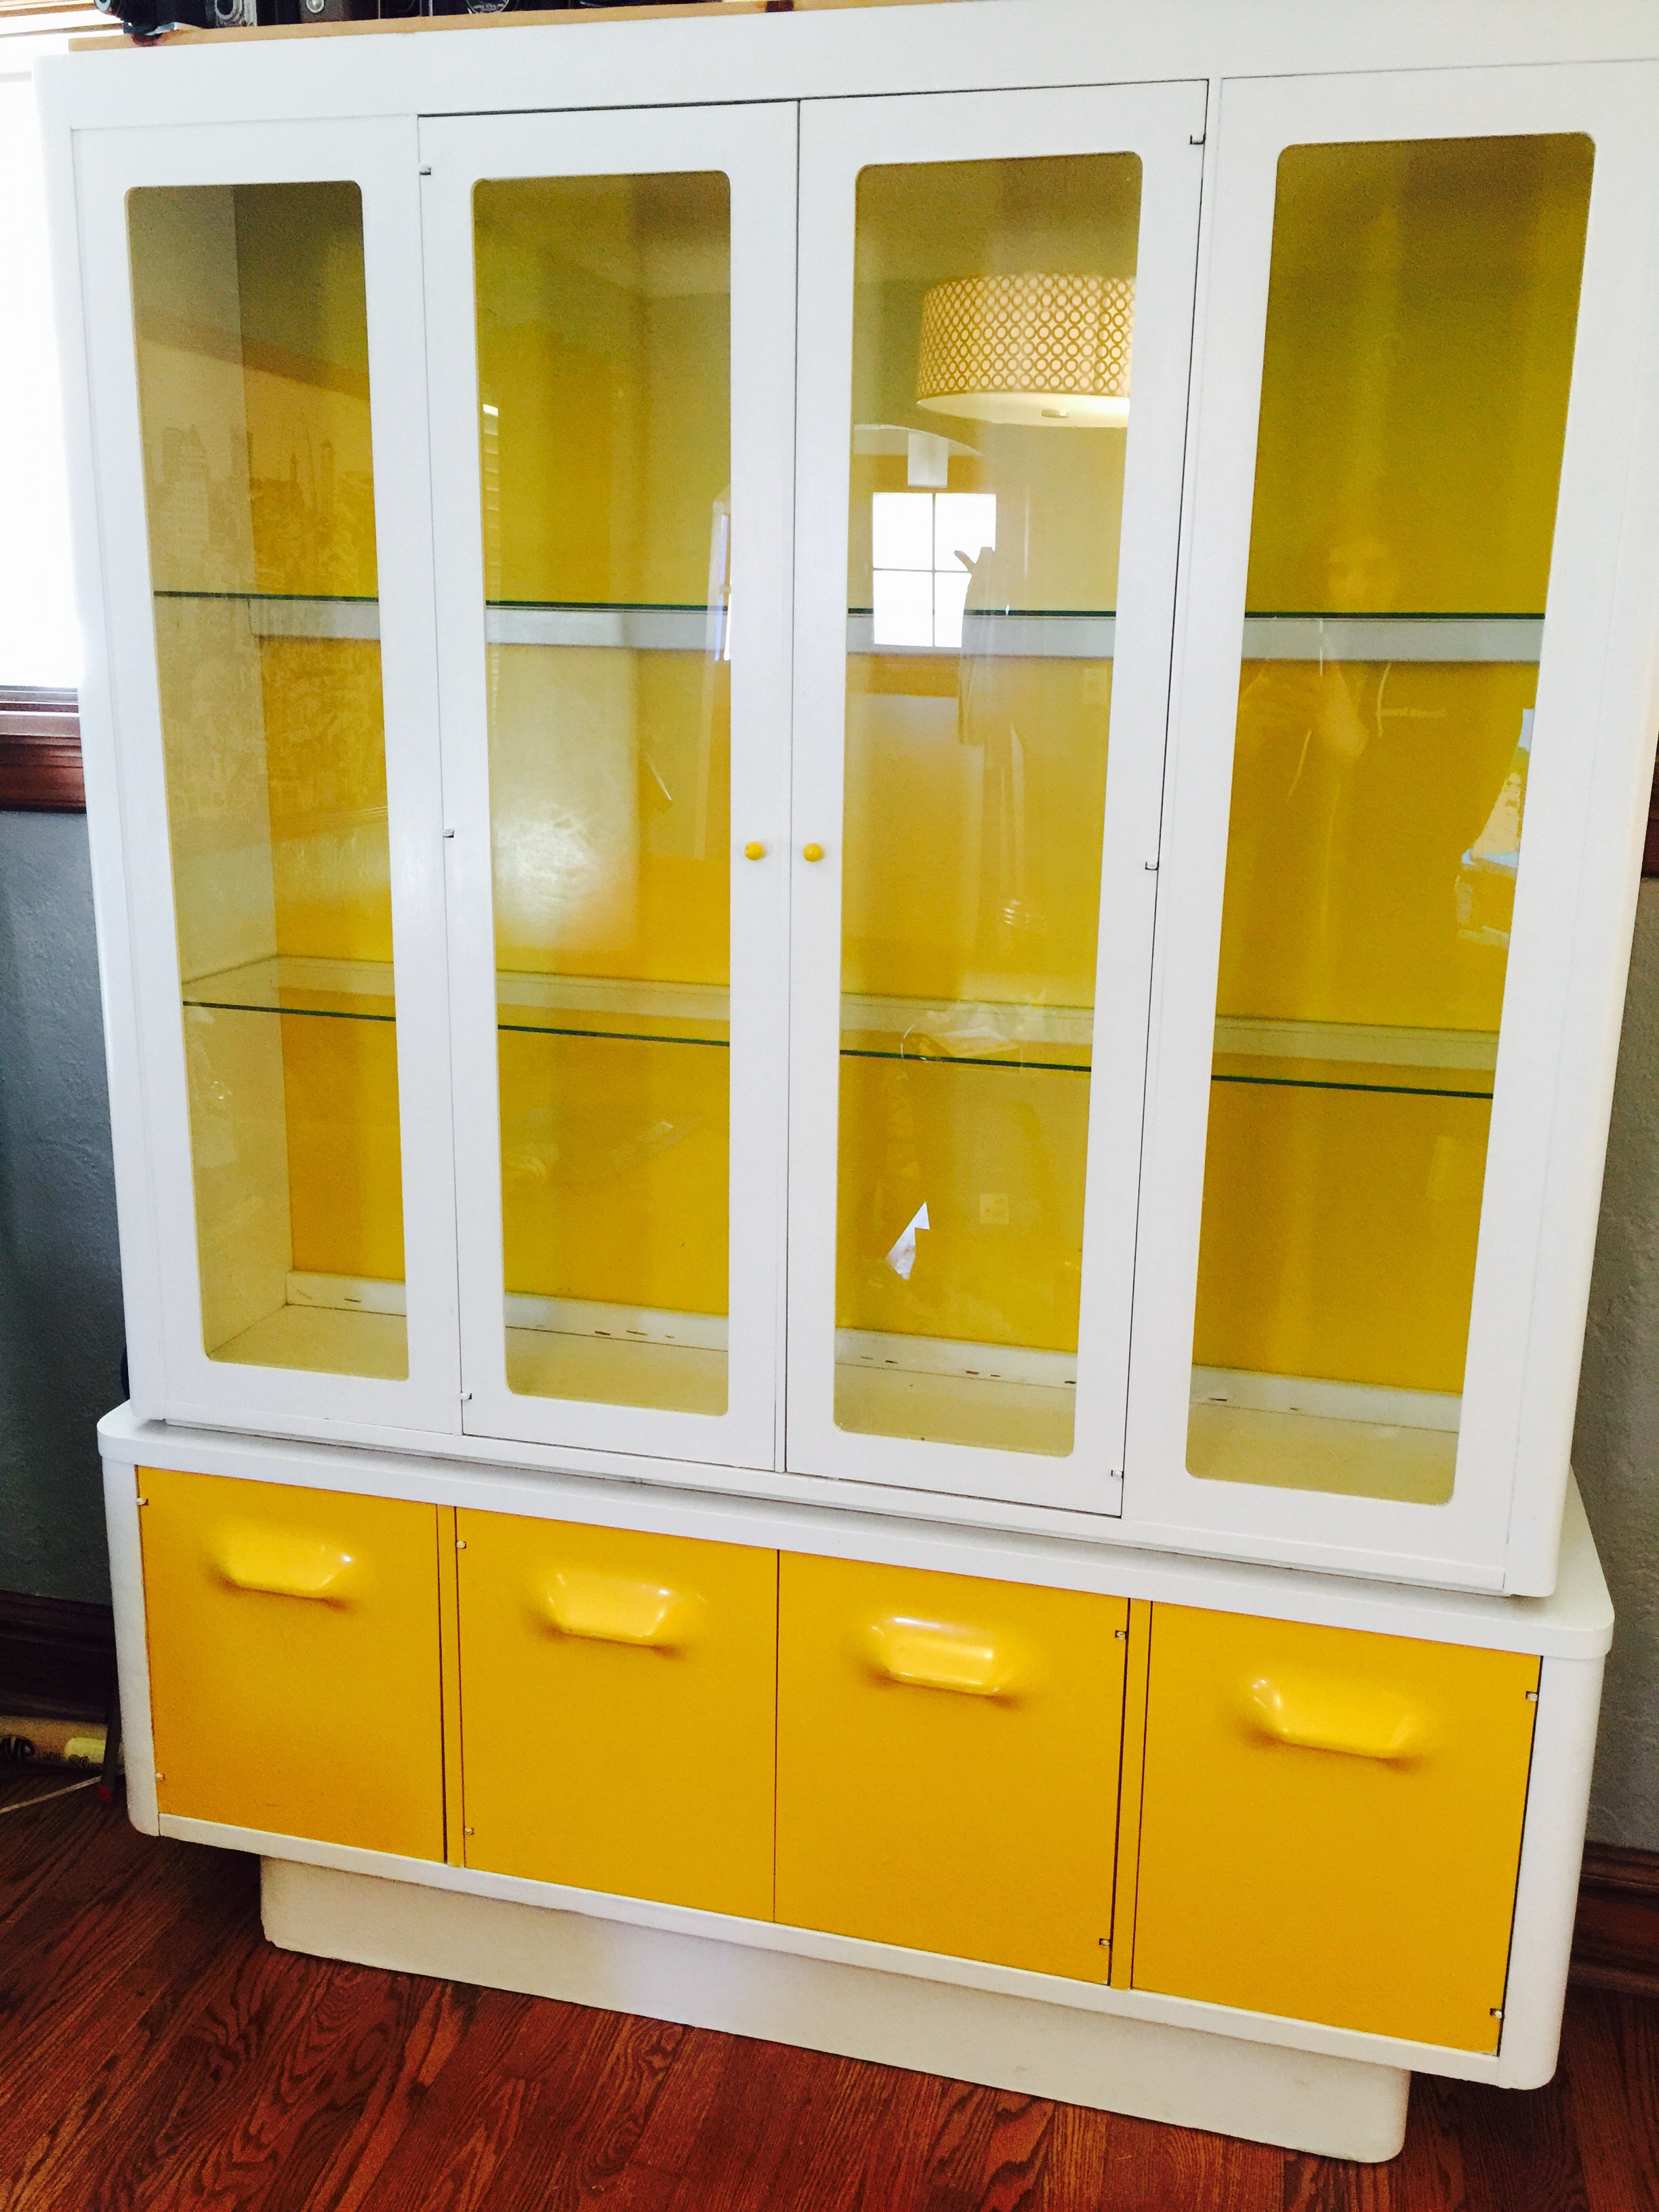 Rare, 1970u0027s Broyhill China Cabinet   Apartment Therapy Marketplace  Classifieds